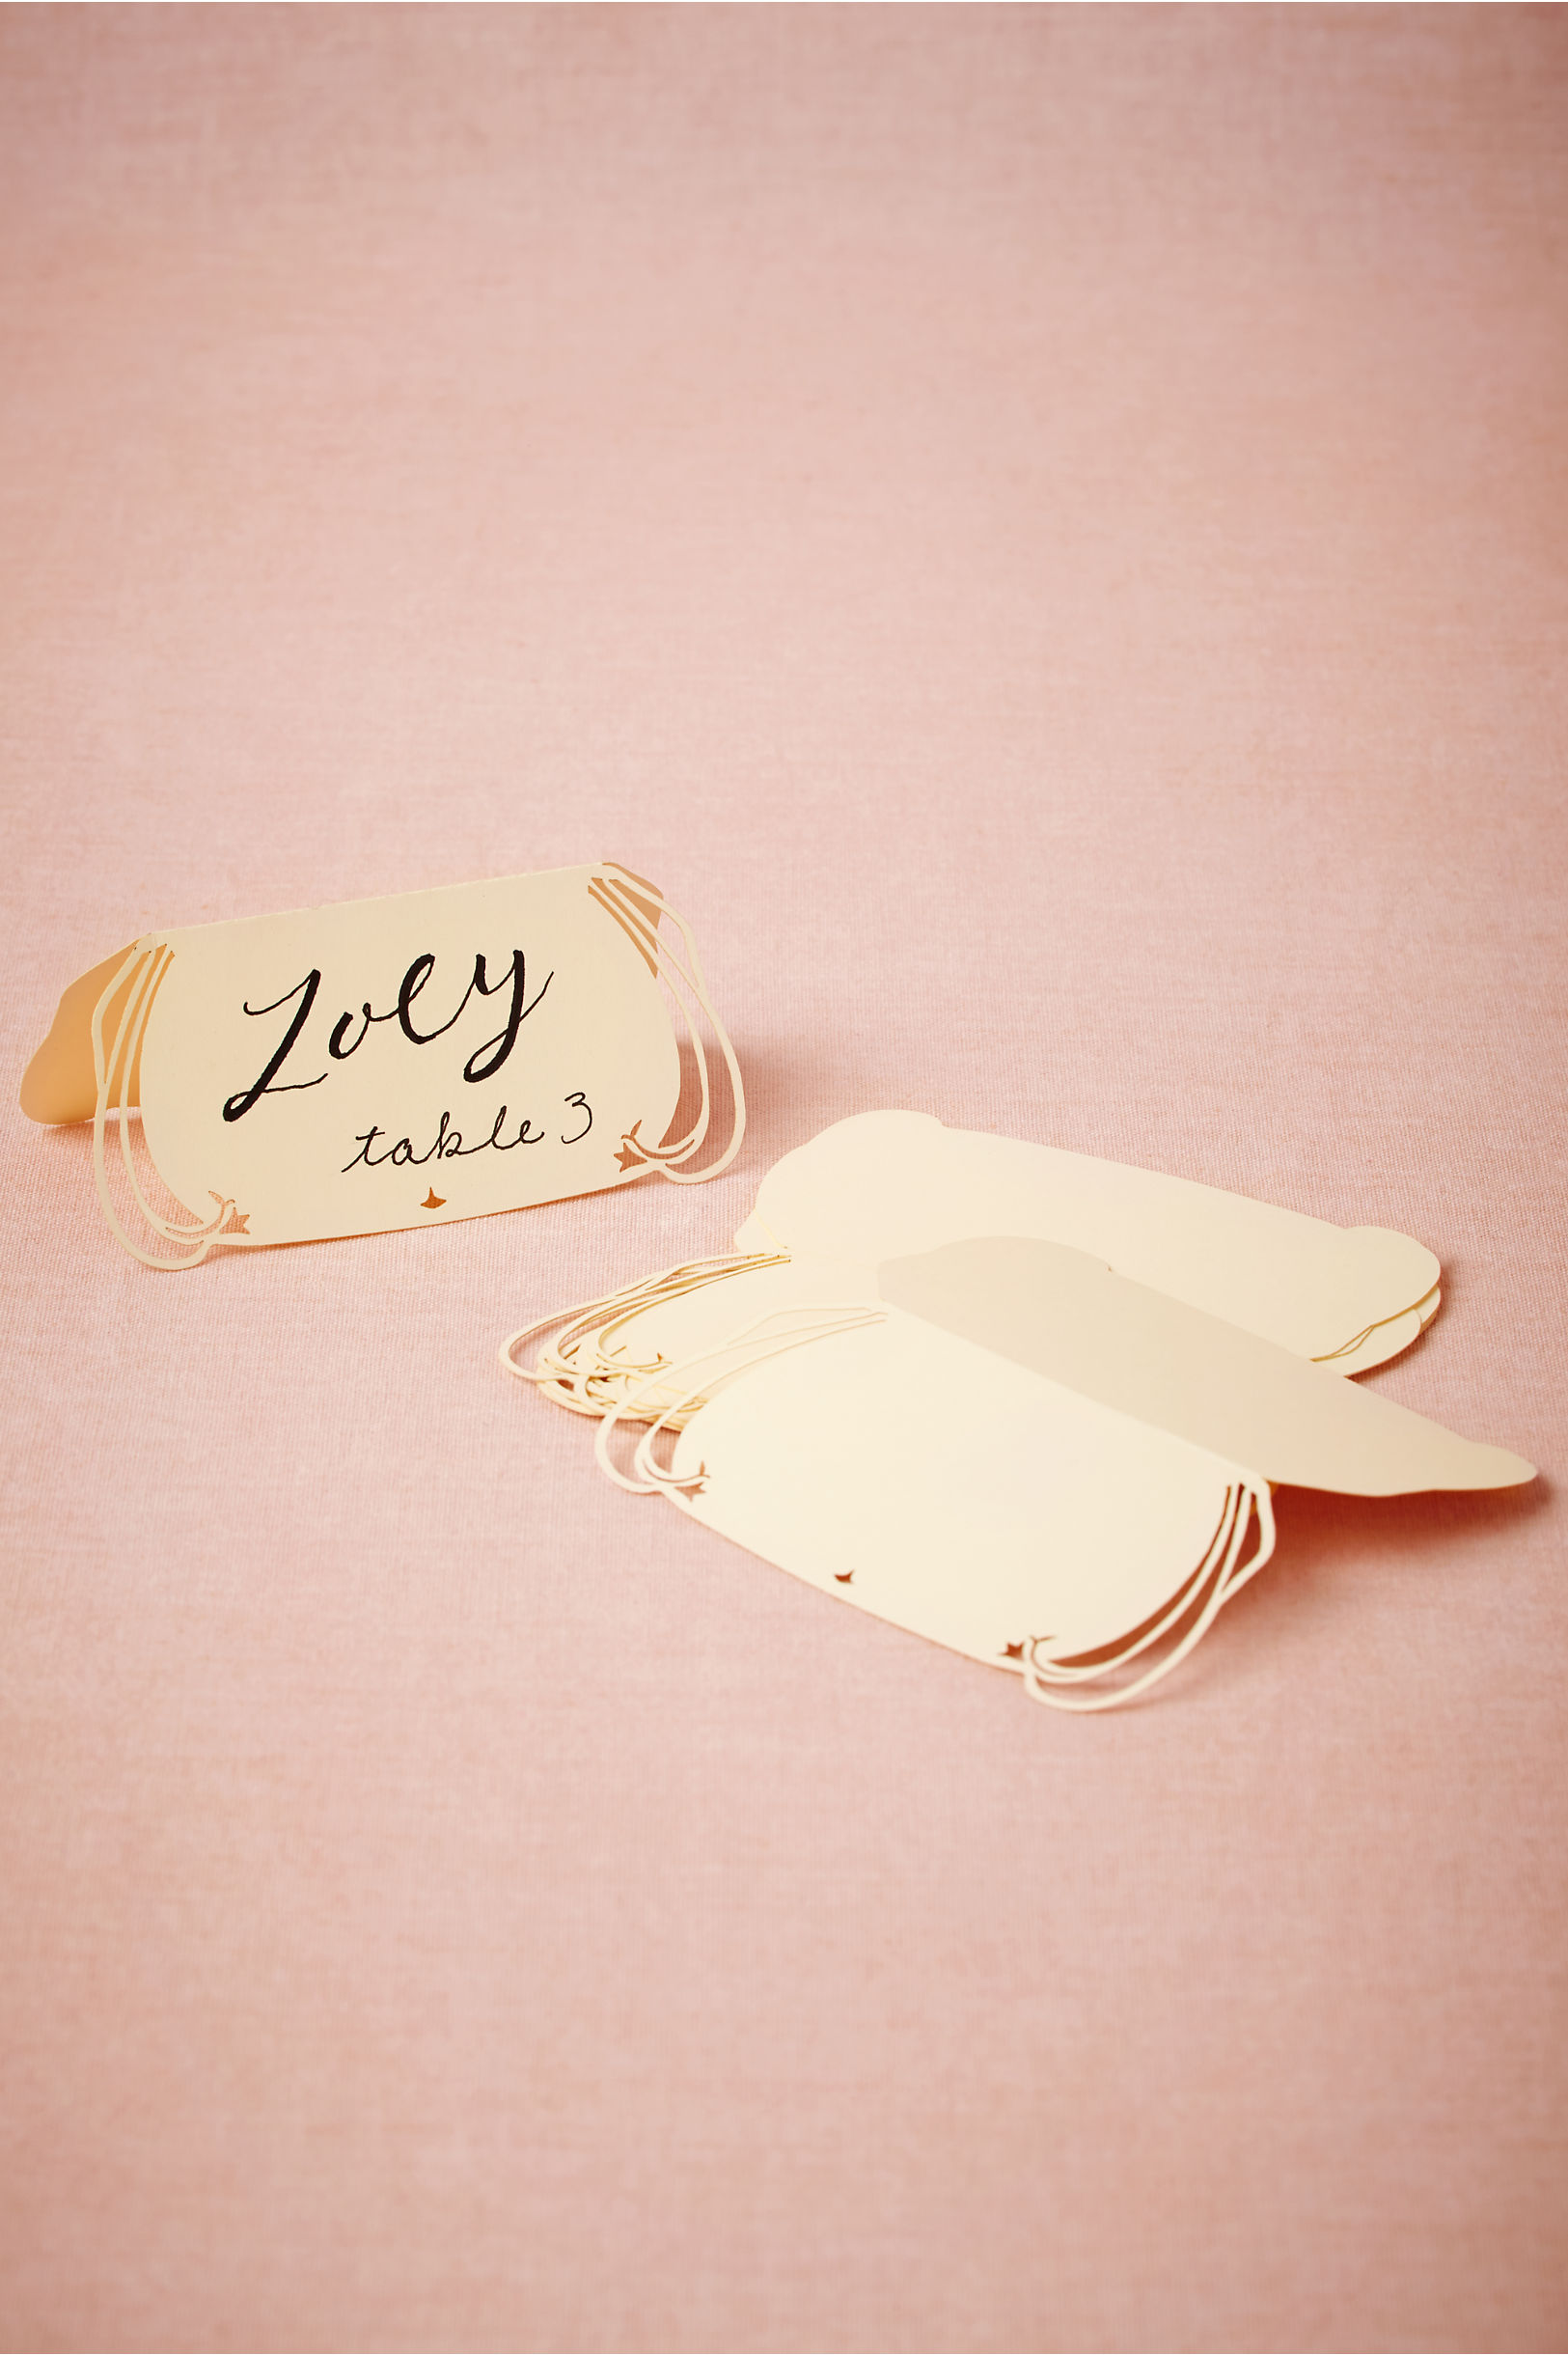 Lacy Lasercut Place Cards (10) in Décor & Gifts | BHLDN